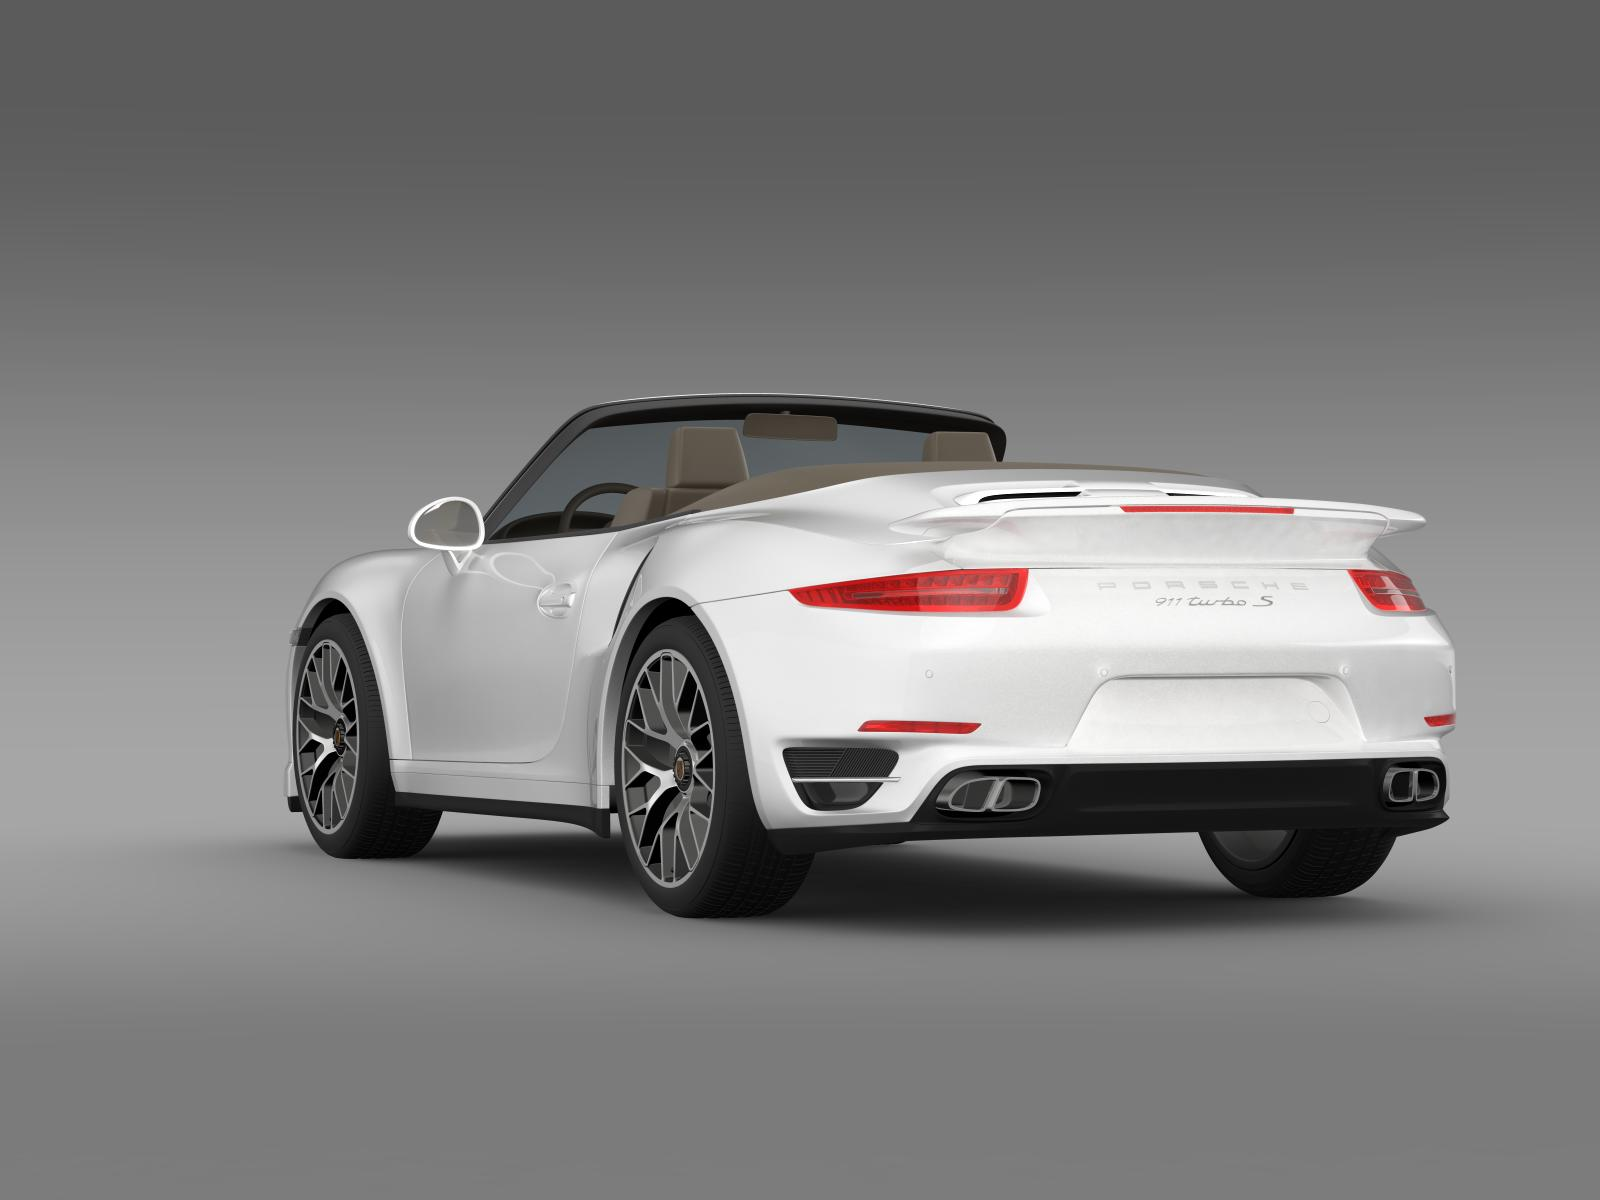 porsche 911 turbo s cabrio 2014 3d model buy porsche 911. Black Bedroom Furniture Sets. Home Design Ideas